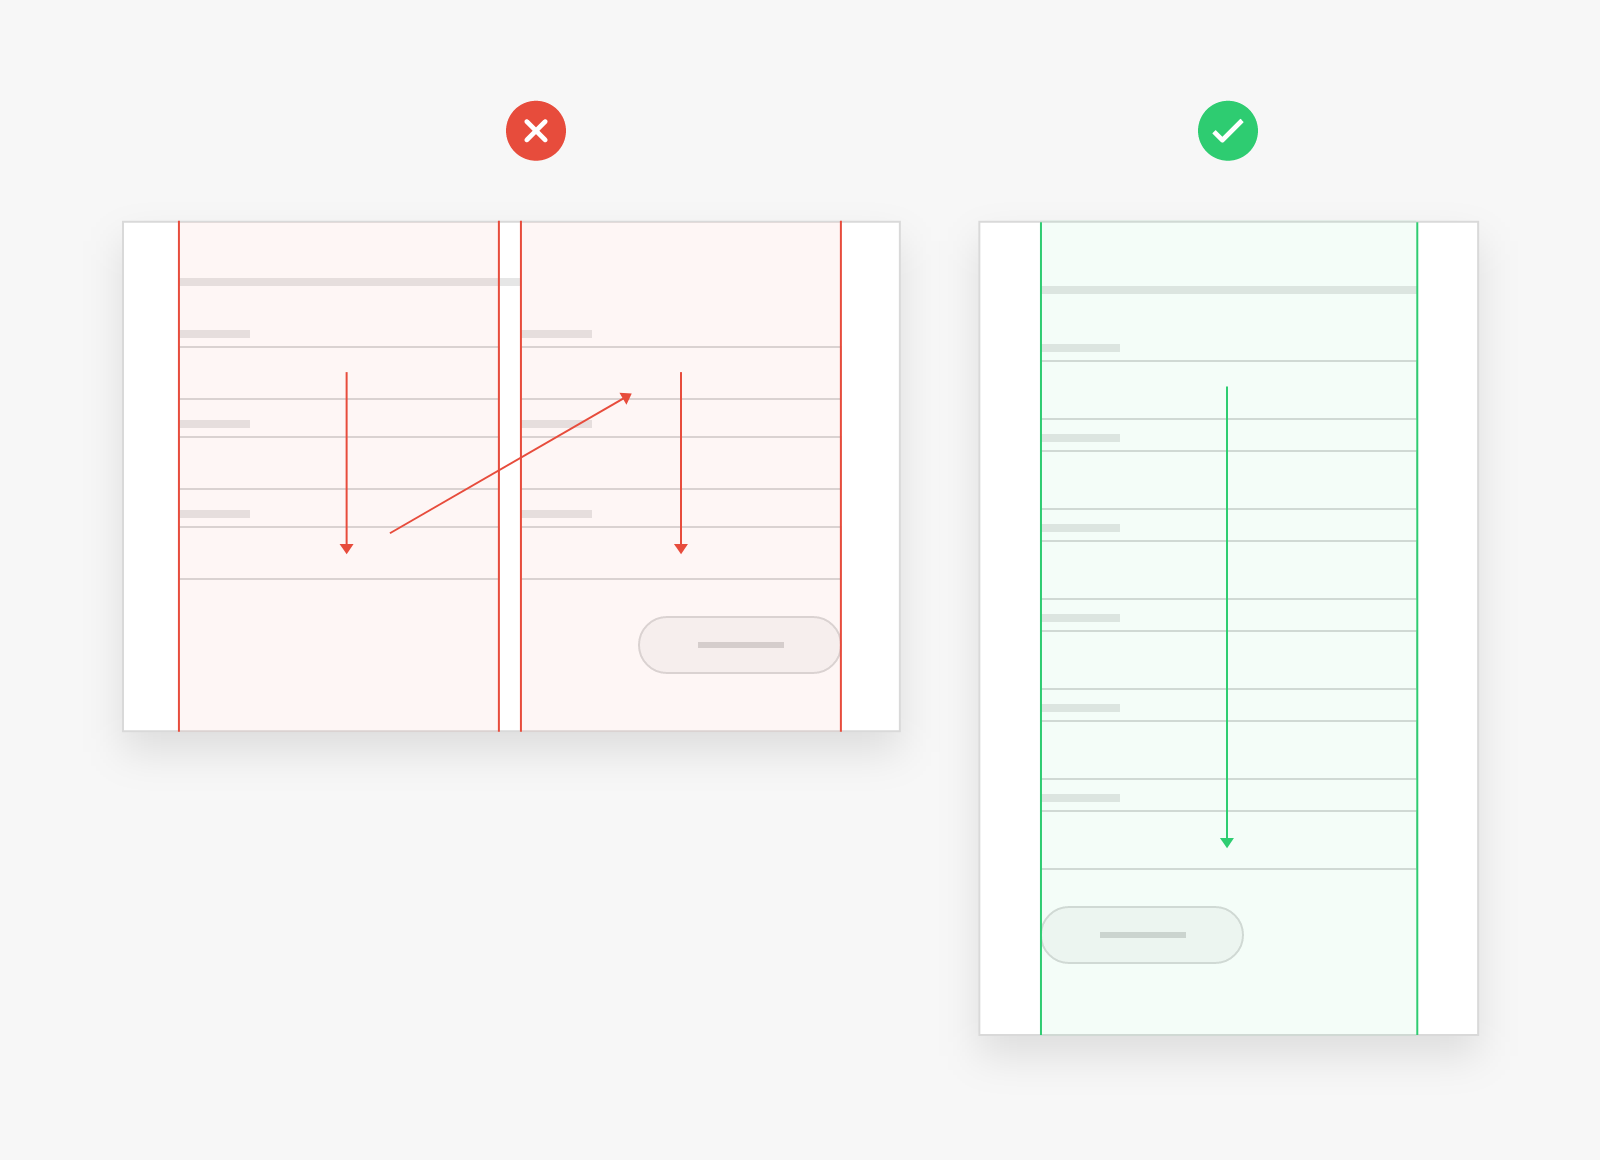 Form best practices: Use single column forms rather than multi-column forms